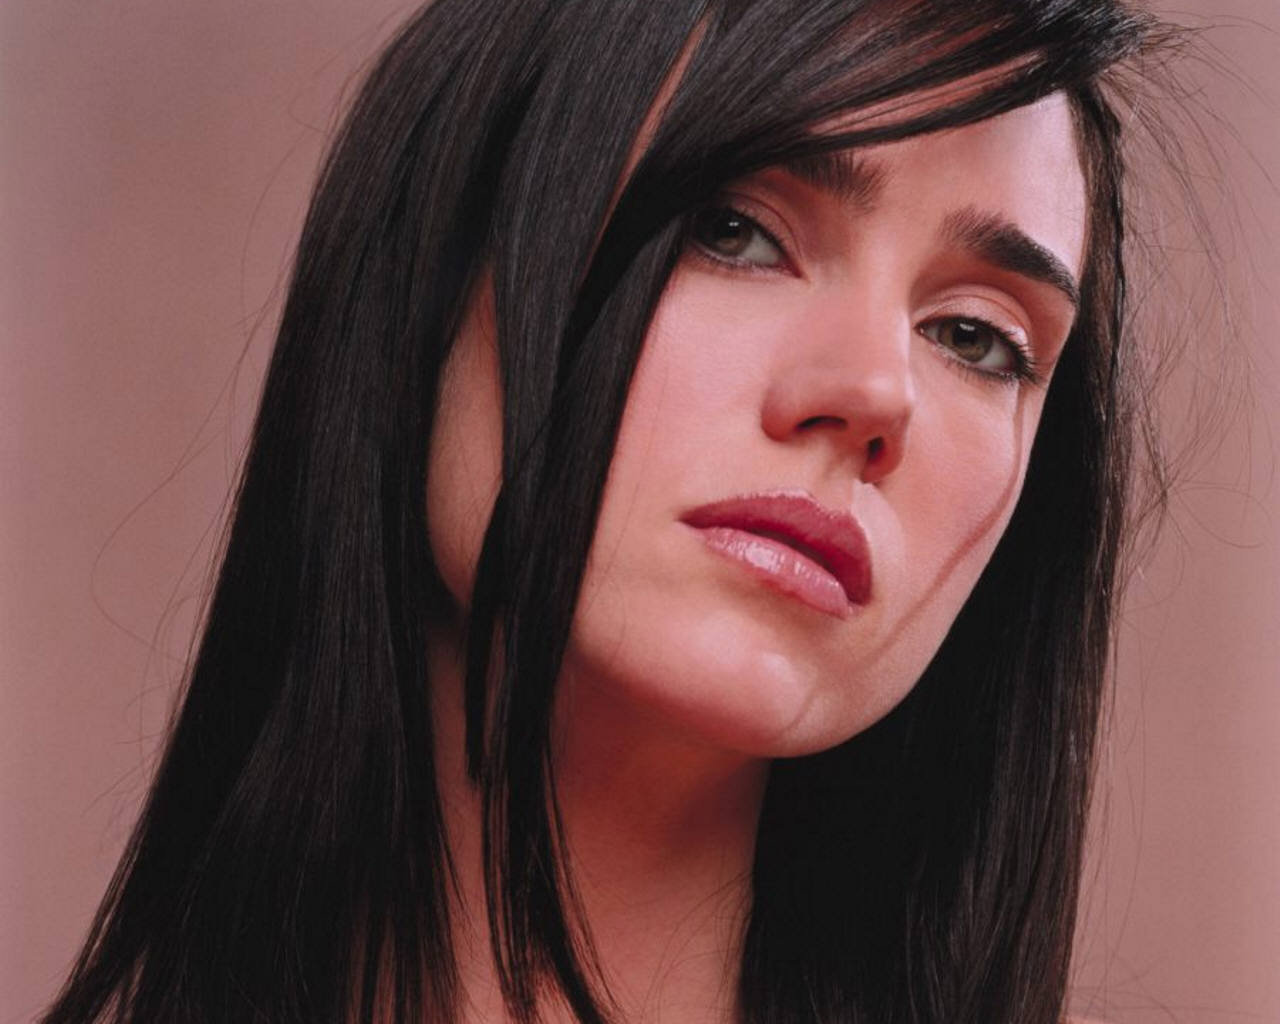 1280x1024 - Jennifer Connelly Wallpapers 5